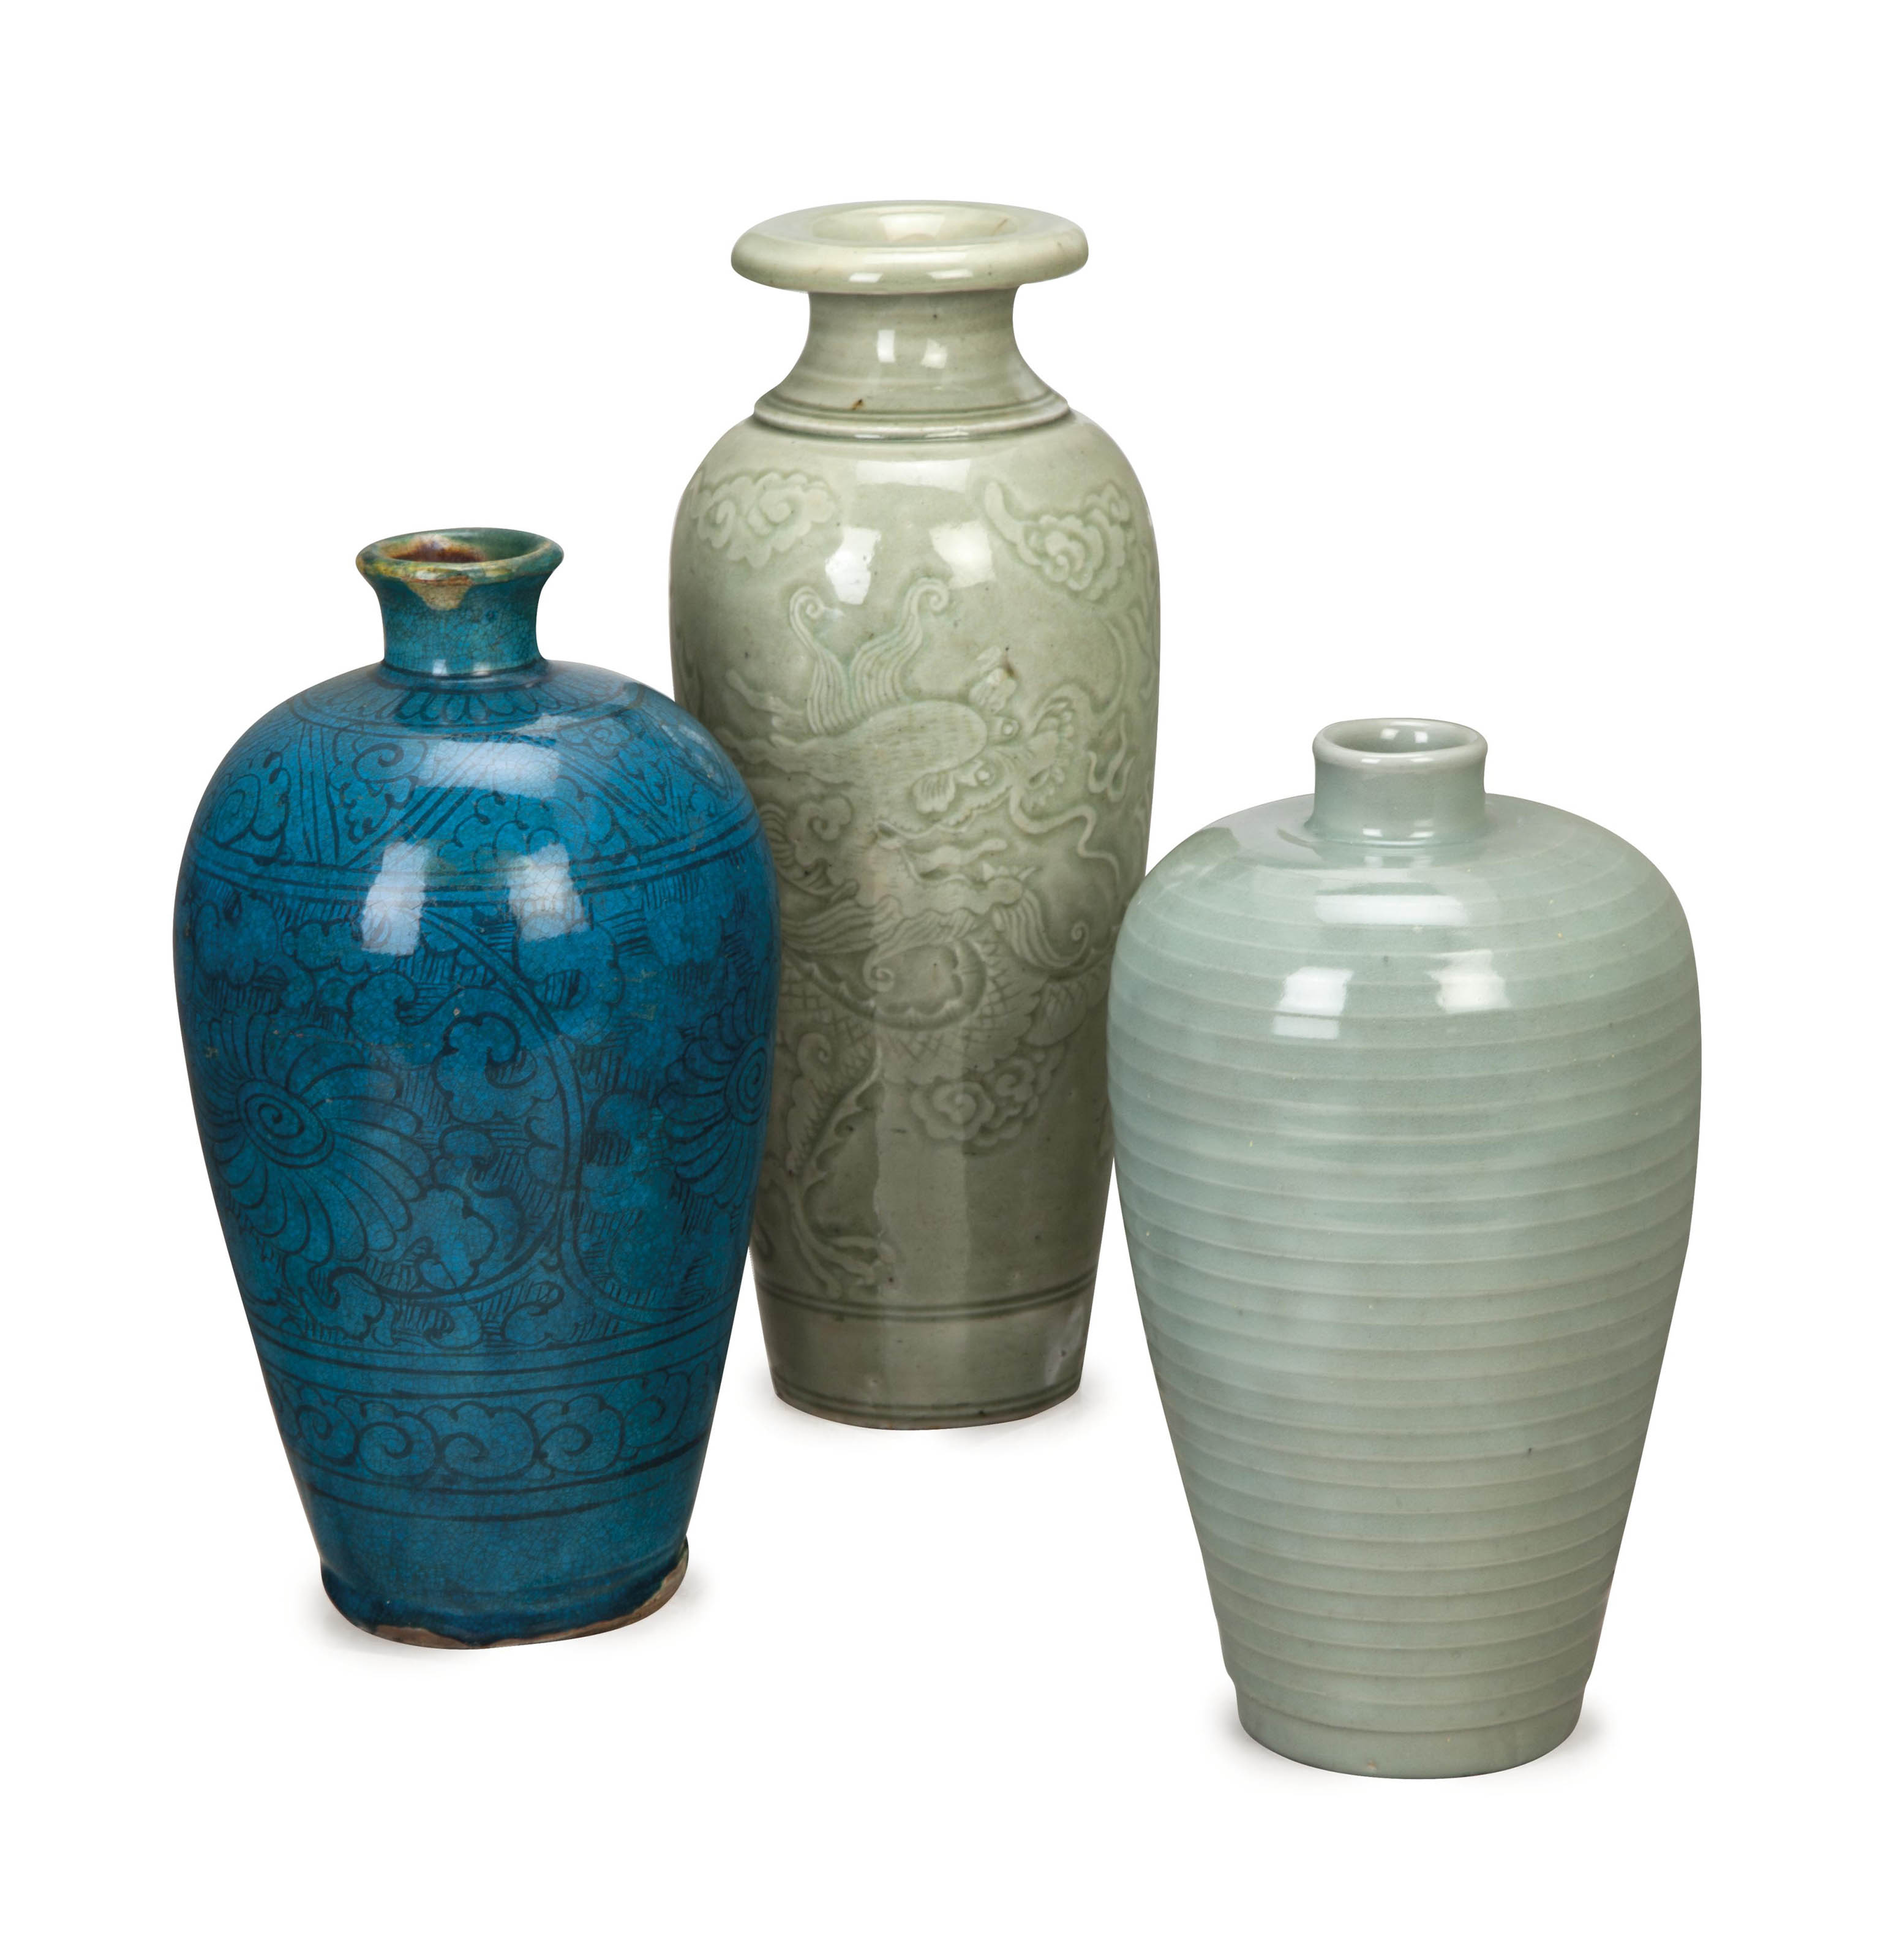 TWO CHINESE CELADON VASES AND